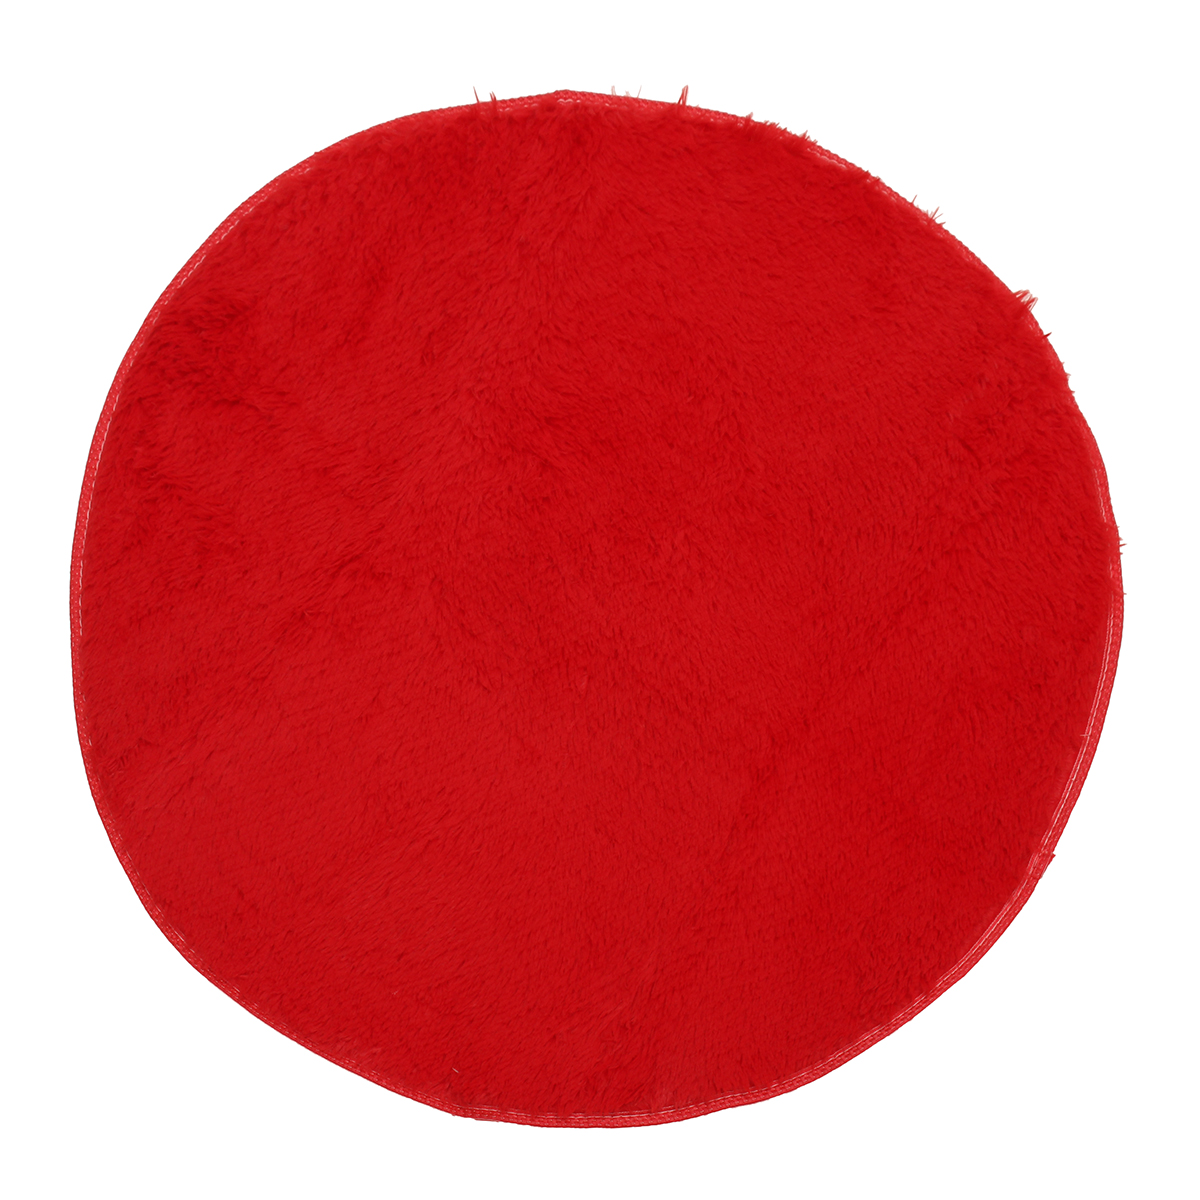 tempsa tapis rond rouge peluche anti d rapant pour salle de bain chambre 120cm achat vente. Black Bedroom Furniture Sets. Home Design Ideas